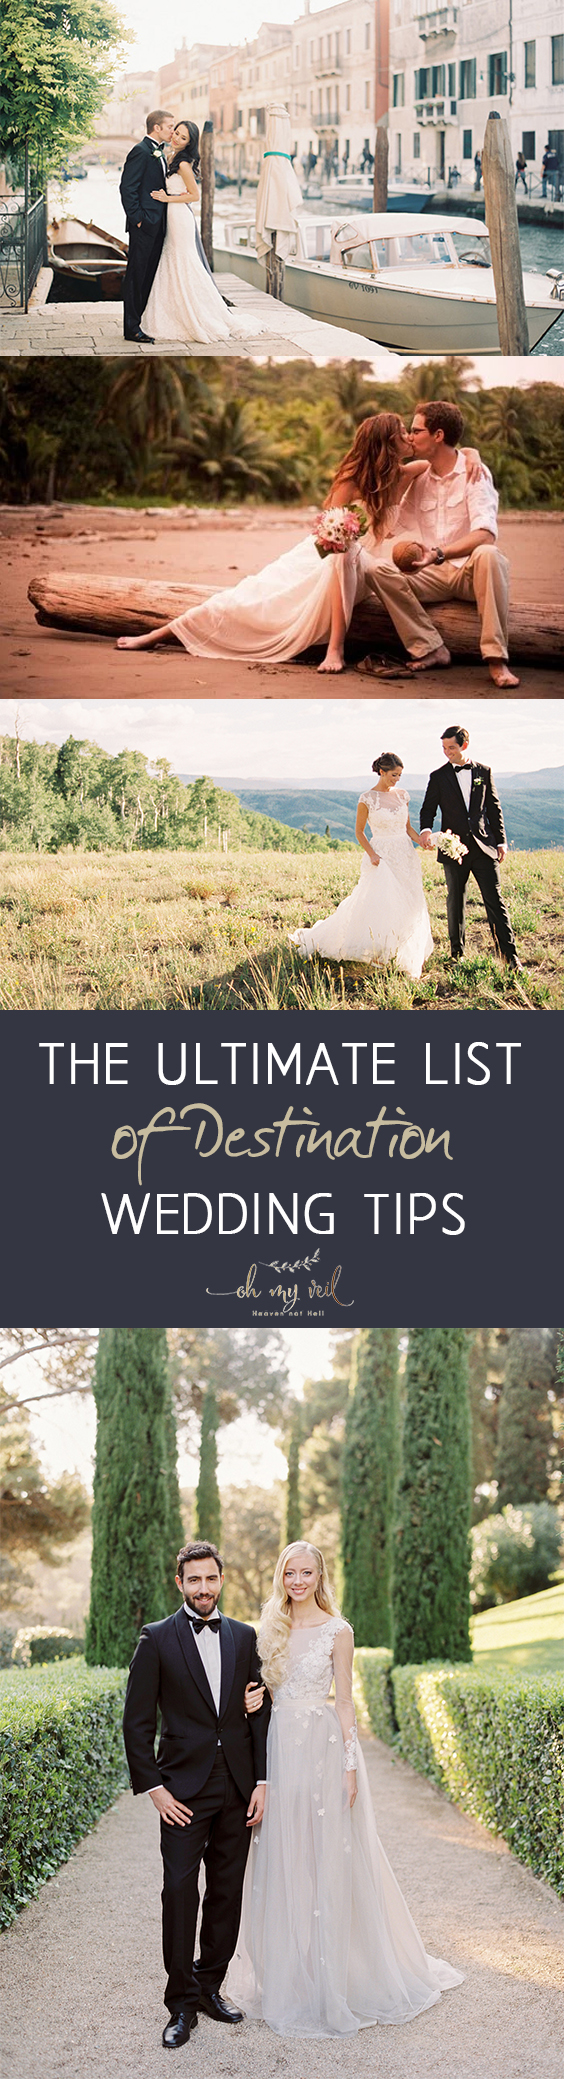 Destination Weddings, Destination Wedding Tips, Destination Wedding Must Haves, How to Throw A Destination Wedding, Wedding Tips, Wedding Hacks, Dream Destination Weddings, Popular Pin